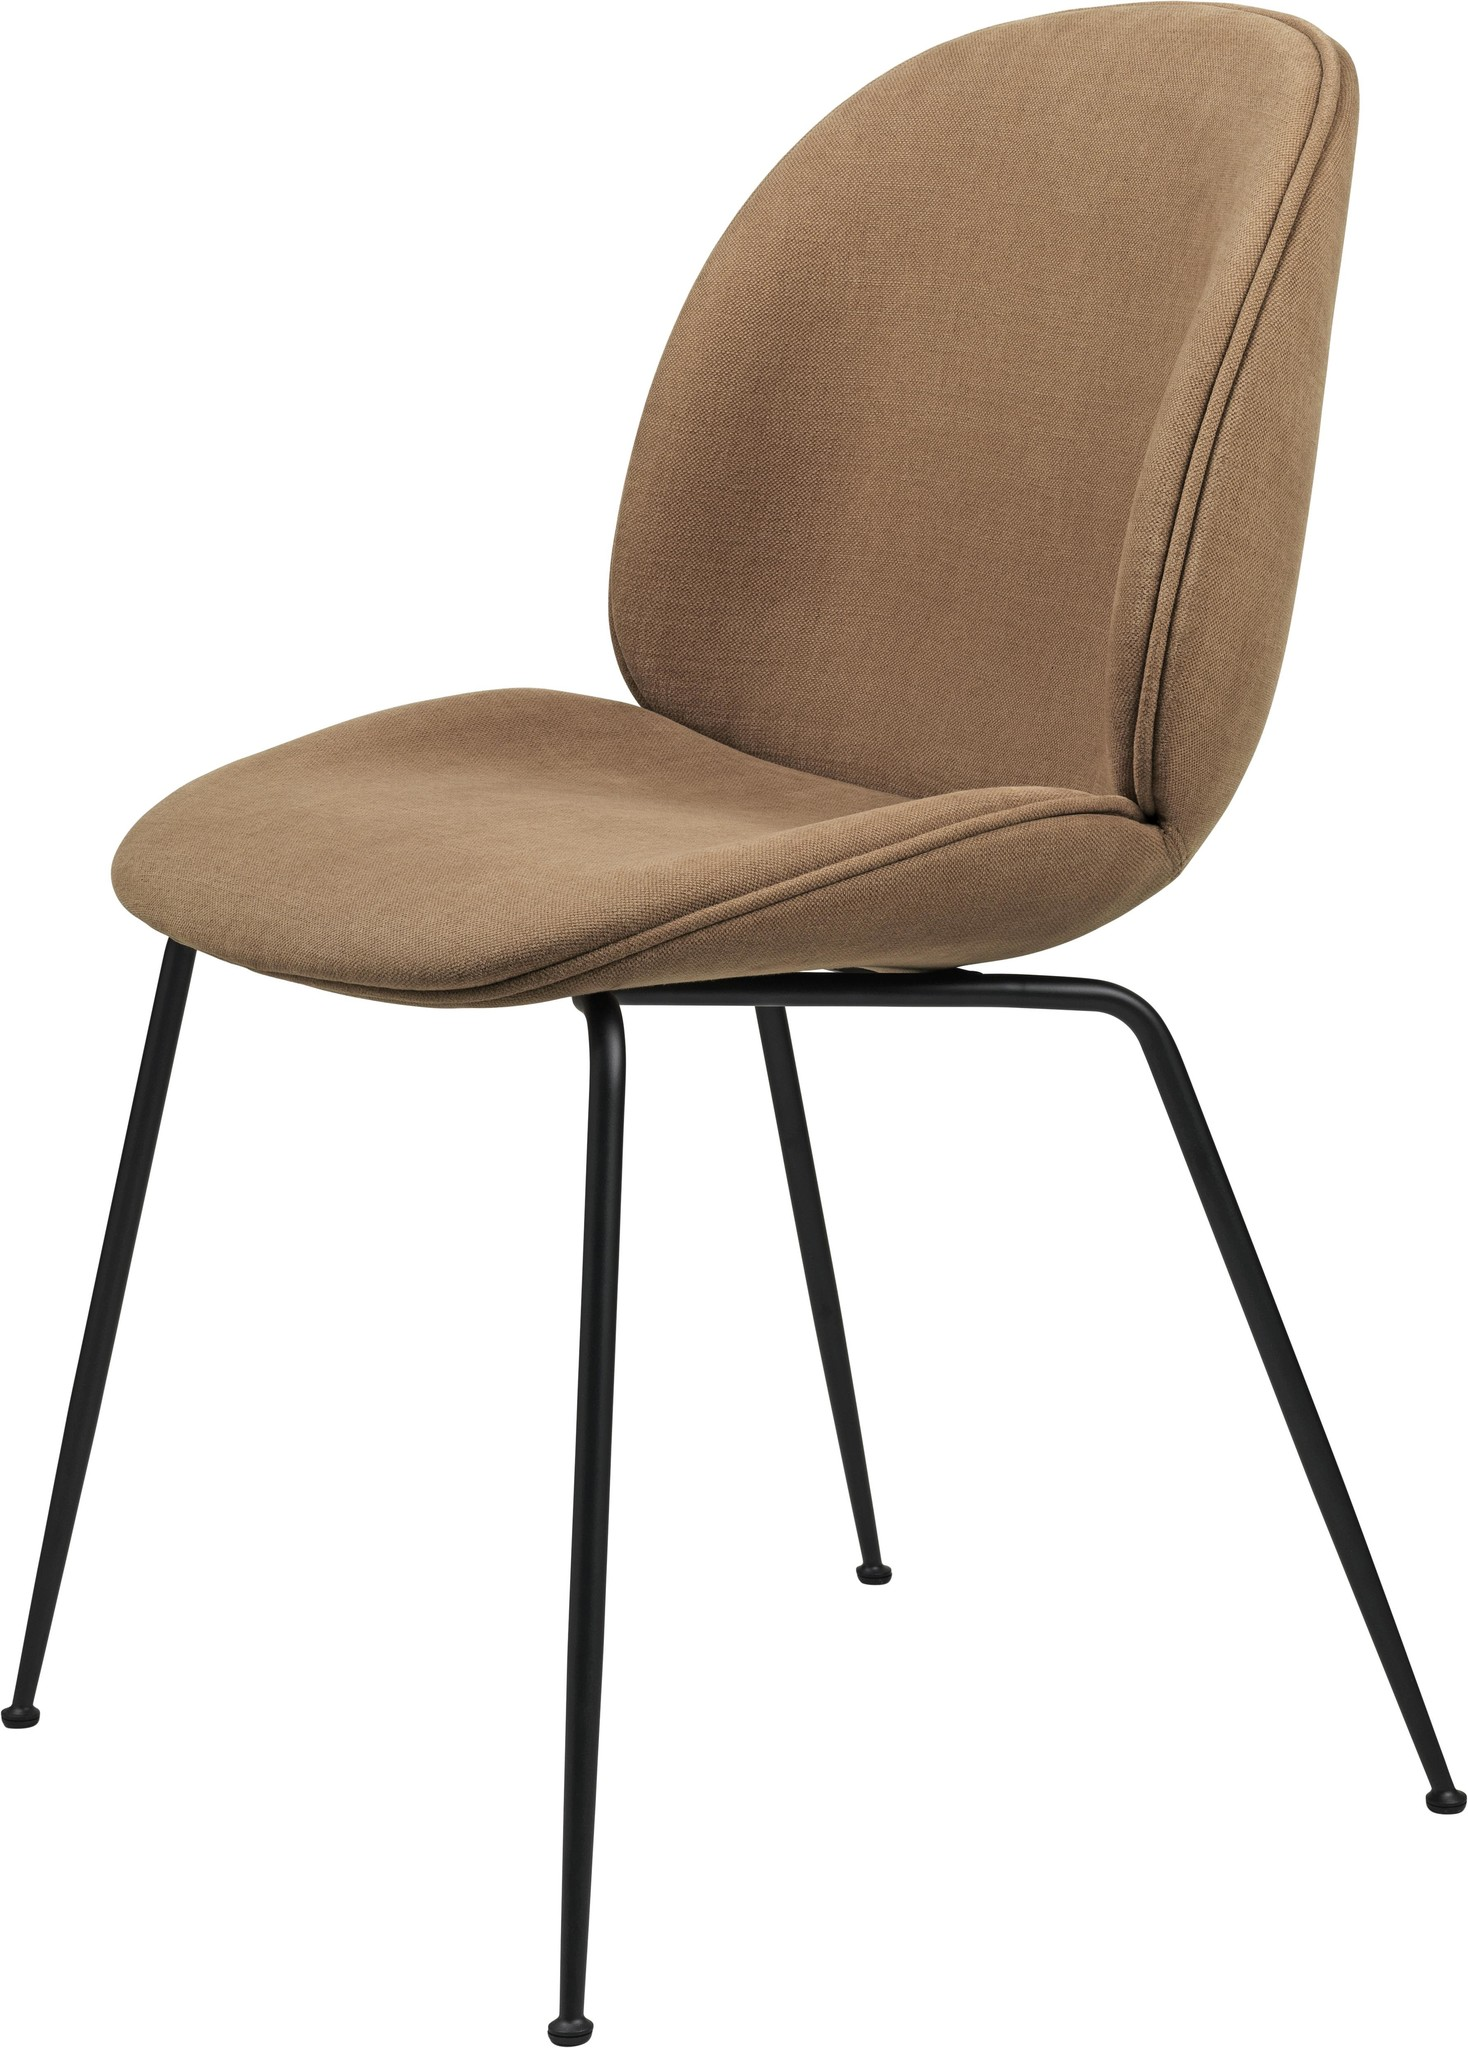 Gubi Beetle Dining Chair - Fully Upholstered - Conic base